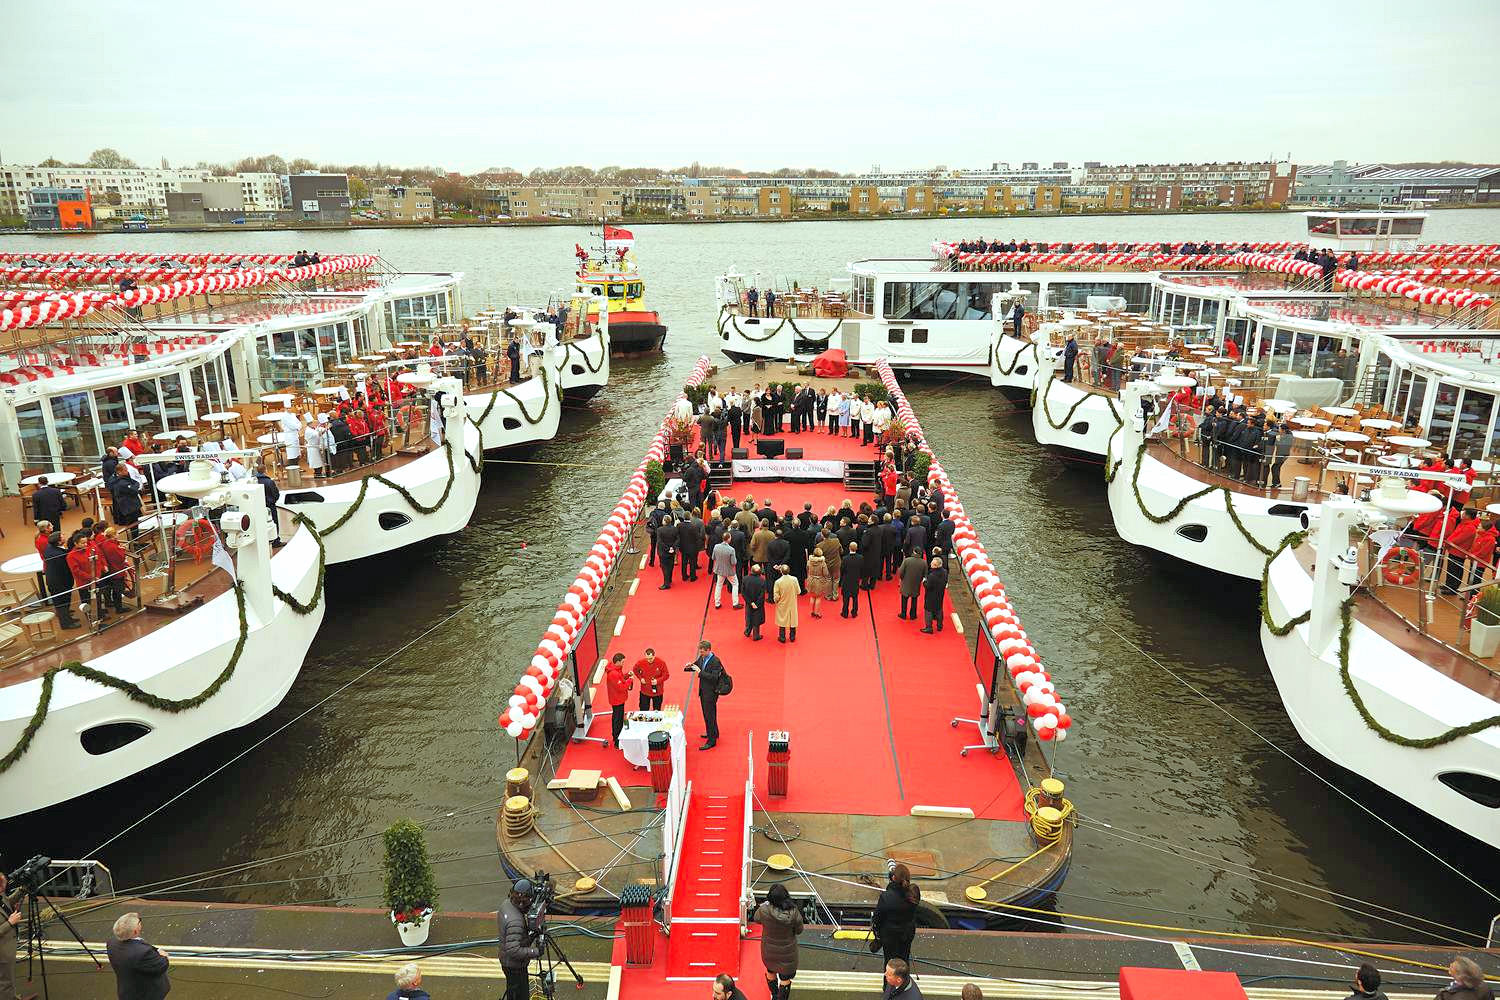 Nine Viking Longships were christened in Amsterdam on March 17. Photo: Courtesy of Viking Cruises. Unauthorized use is prohibited.